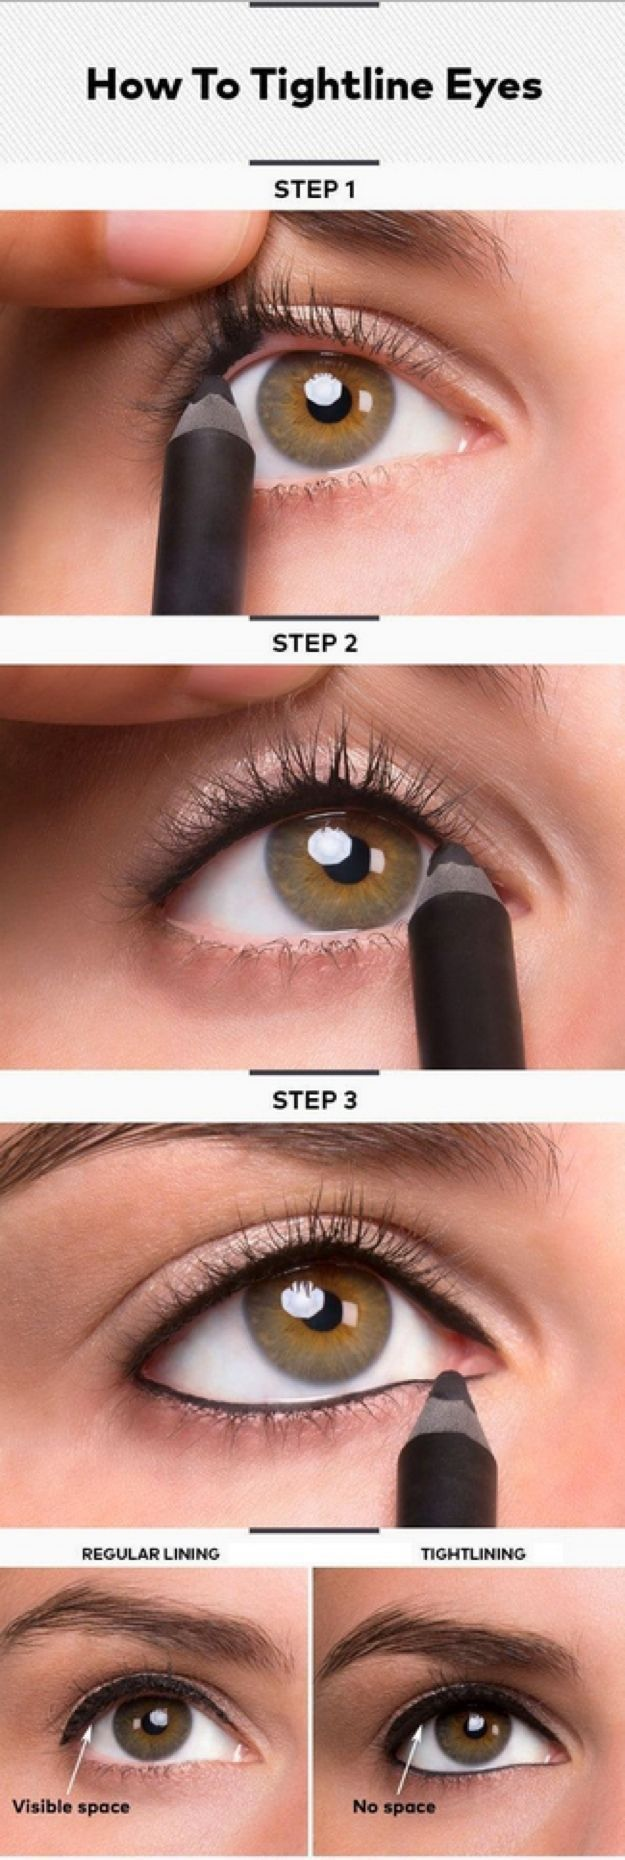 How to Tightline Eyes | Eyeliner Tips and Tricks for A Perfect Tightline Eyeliner Look by Makeup Tutorials at http:∕∕makeuptutorials.com∕makeup-tutorials-beauty-tips